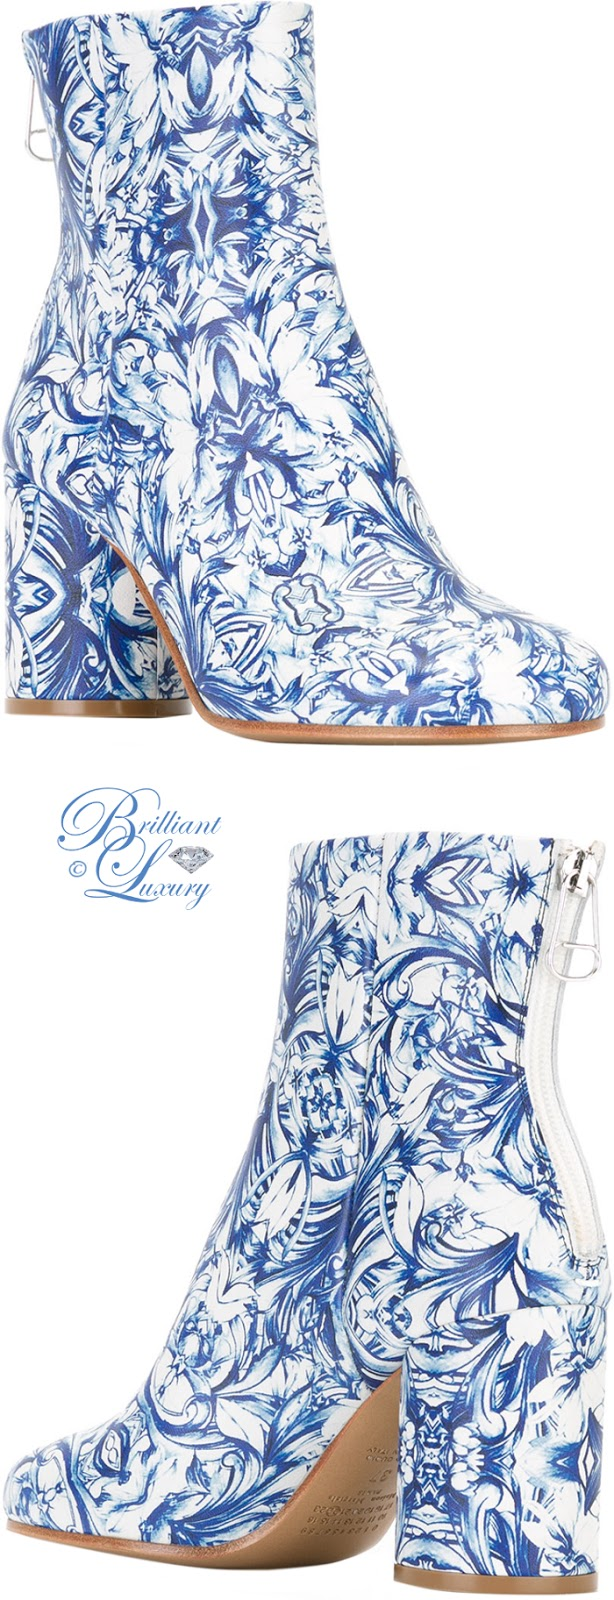 Brilliant Luxury ♦ Maison Margiela china print boots